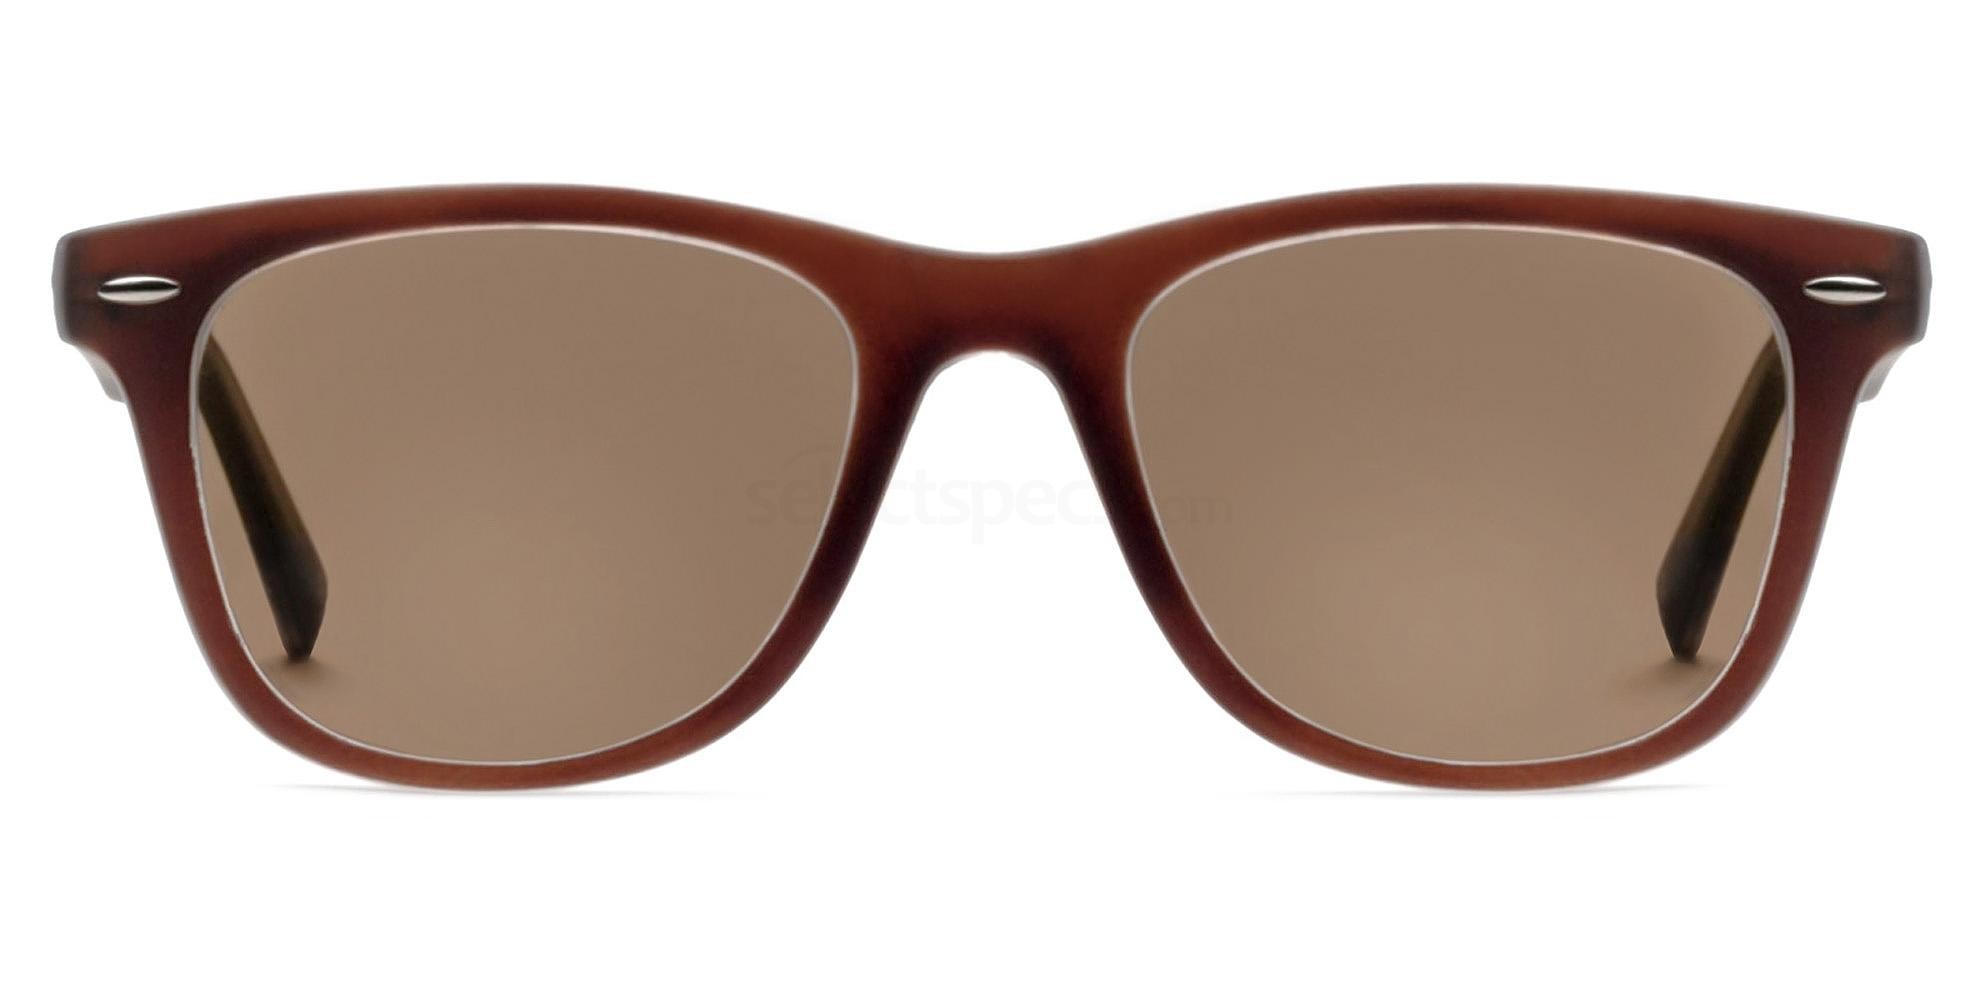 brown wayfarer sunglasses £10